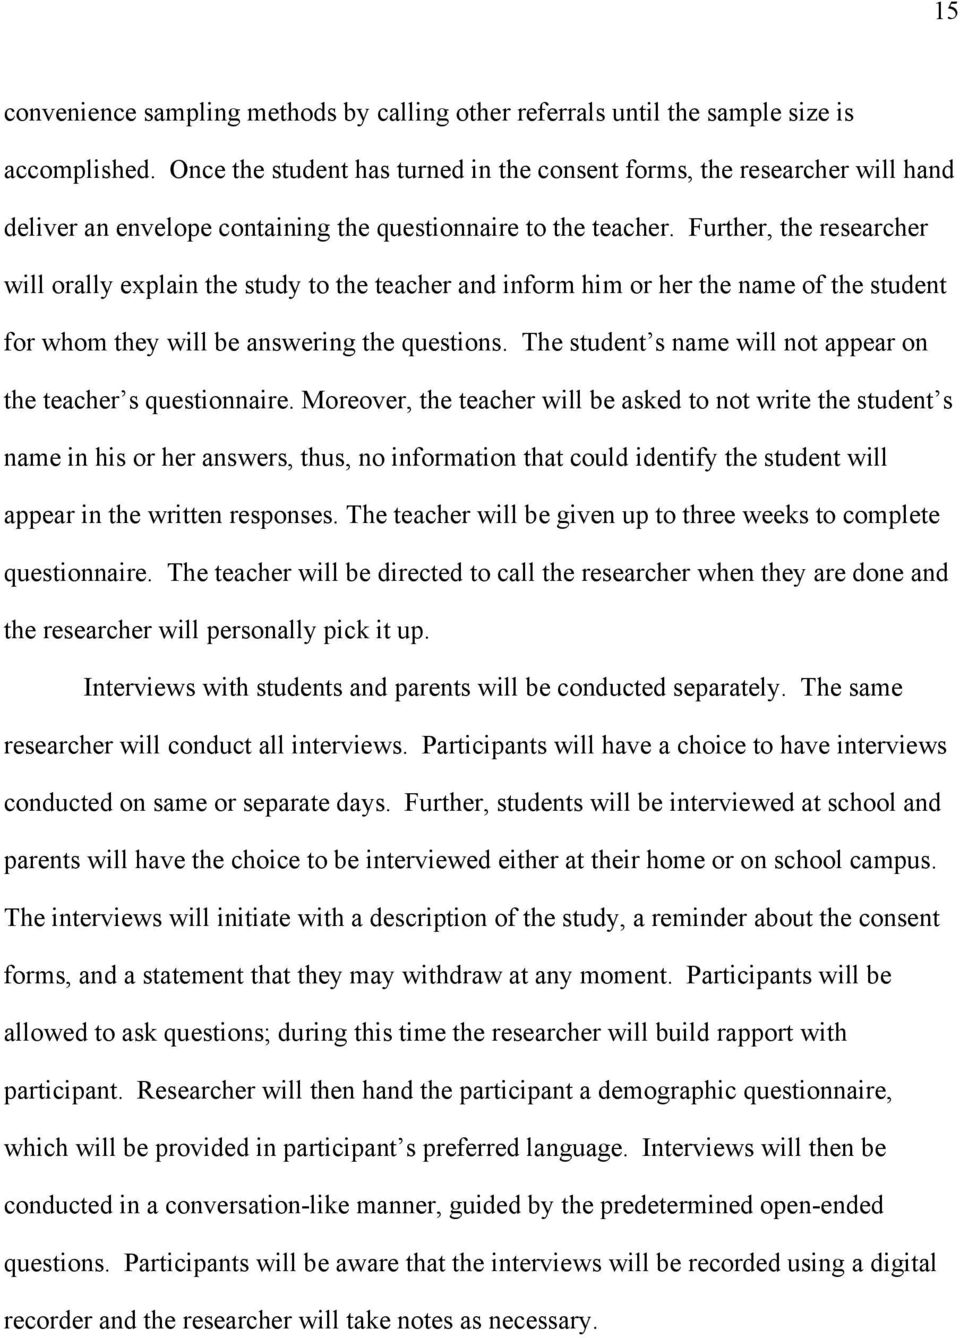 Further, the researcher will orally explain the study to the teacher and inform him or her the name of the student for whom they will be answering the questions.